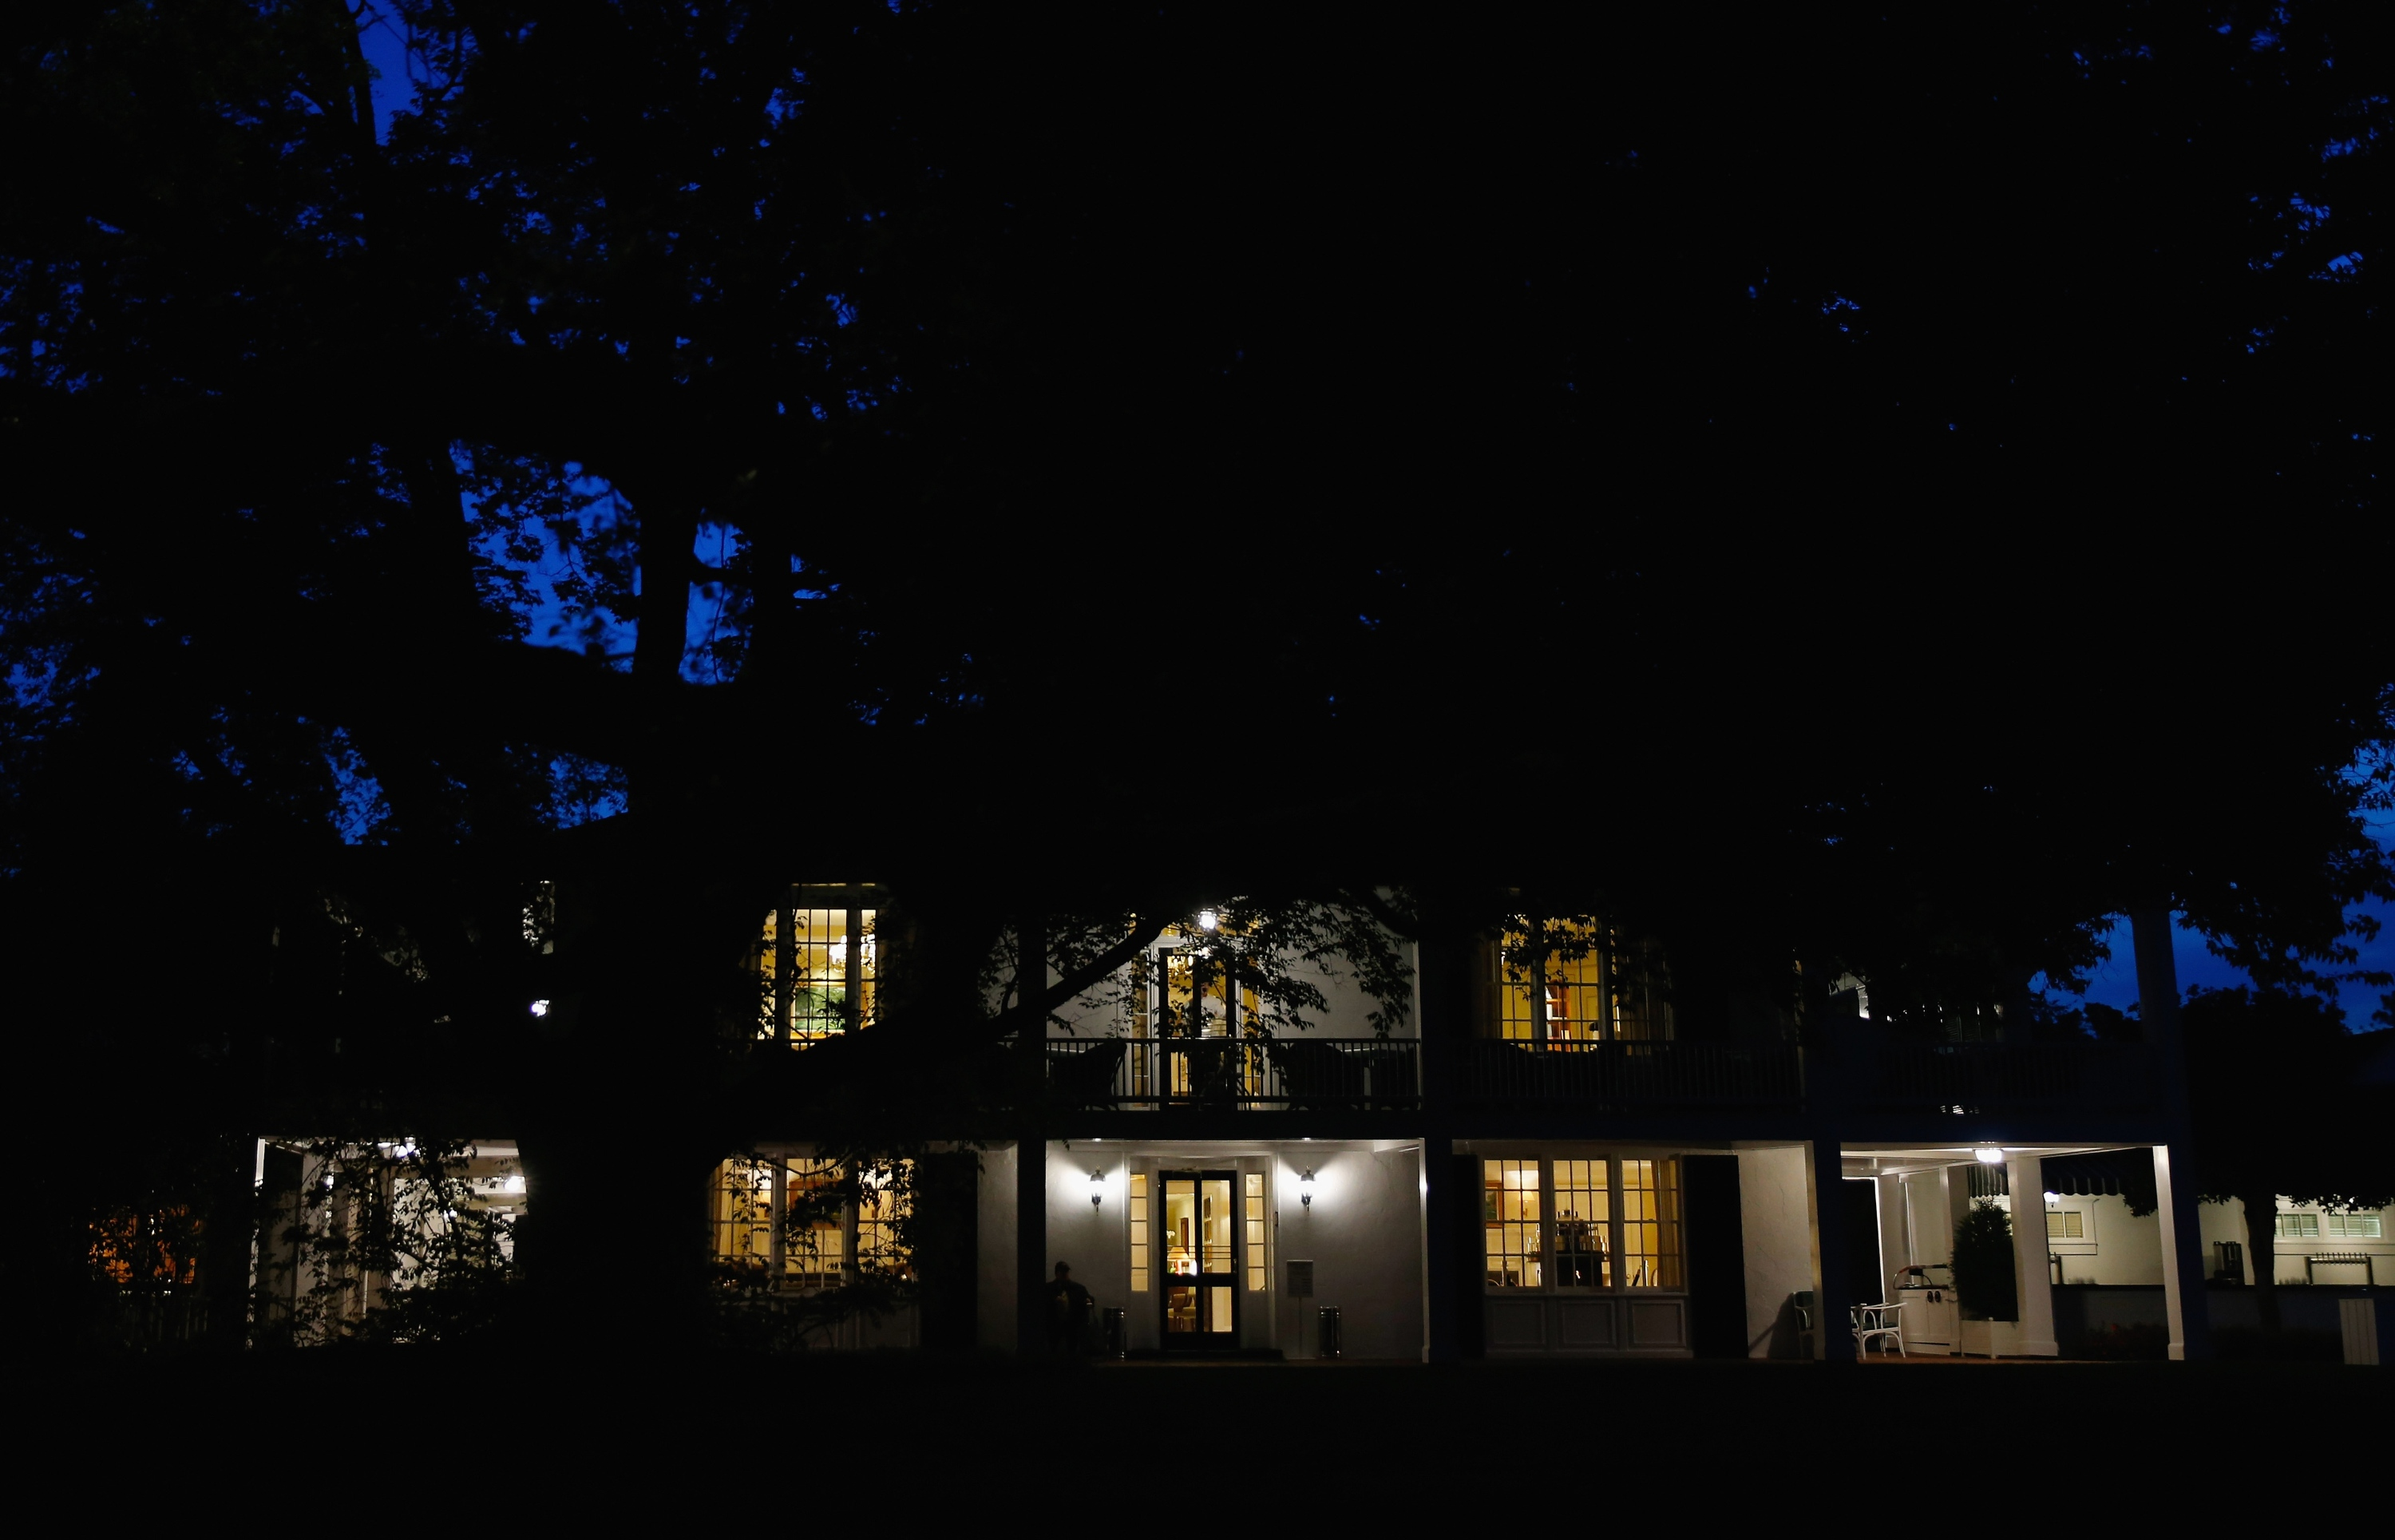 AUGUSTA, GA - APRIL 09: The clubhouse is seen before the start of the first round of the 2015 Masters Tournament at Augusta National Golf Club on April 9, 2015 in Augusta, Georgia. (Photo by Ezra Shaw/Getty Images)